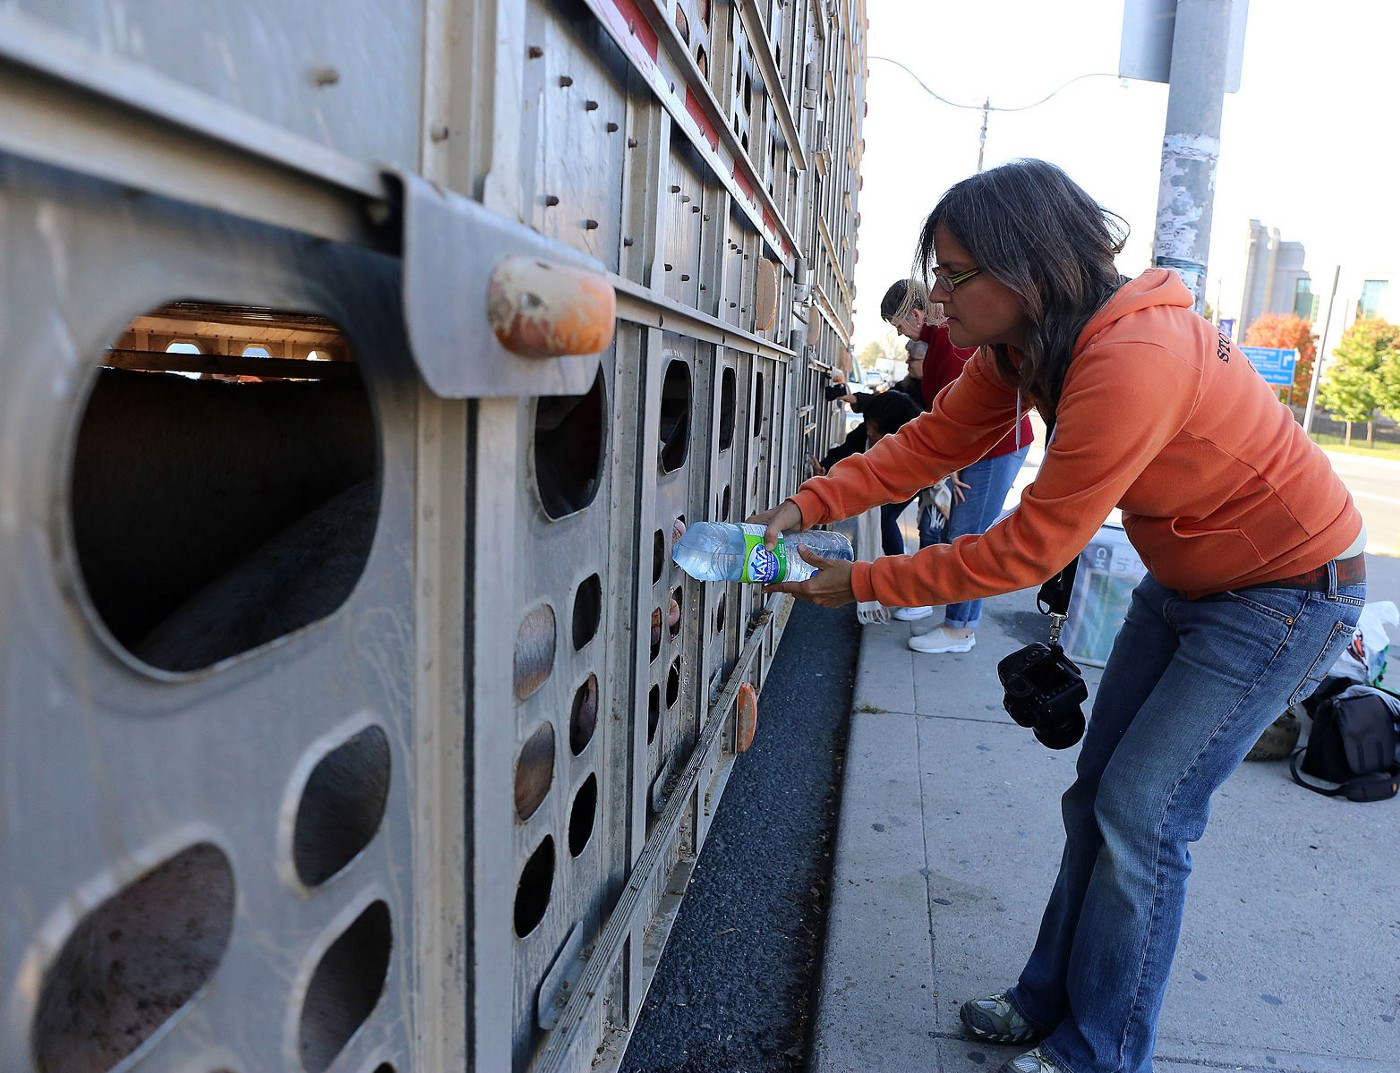 Pig in transport truck being given water by activist.